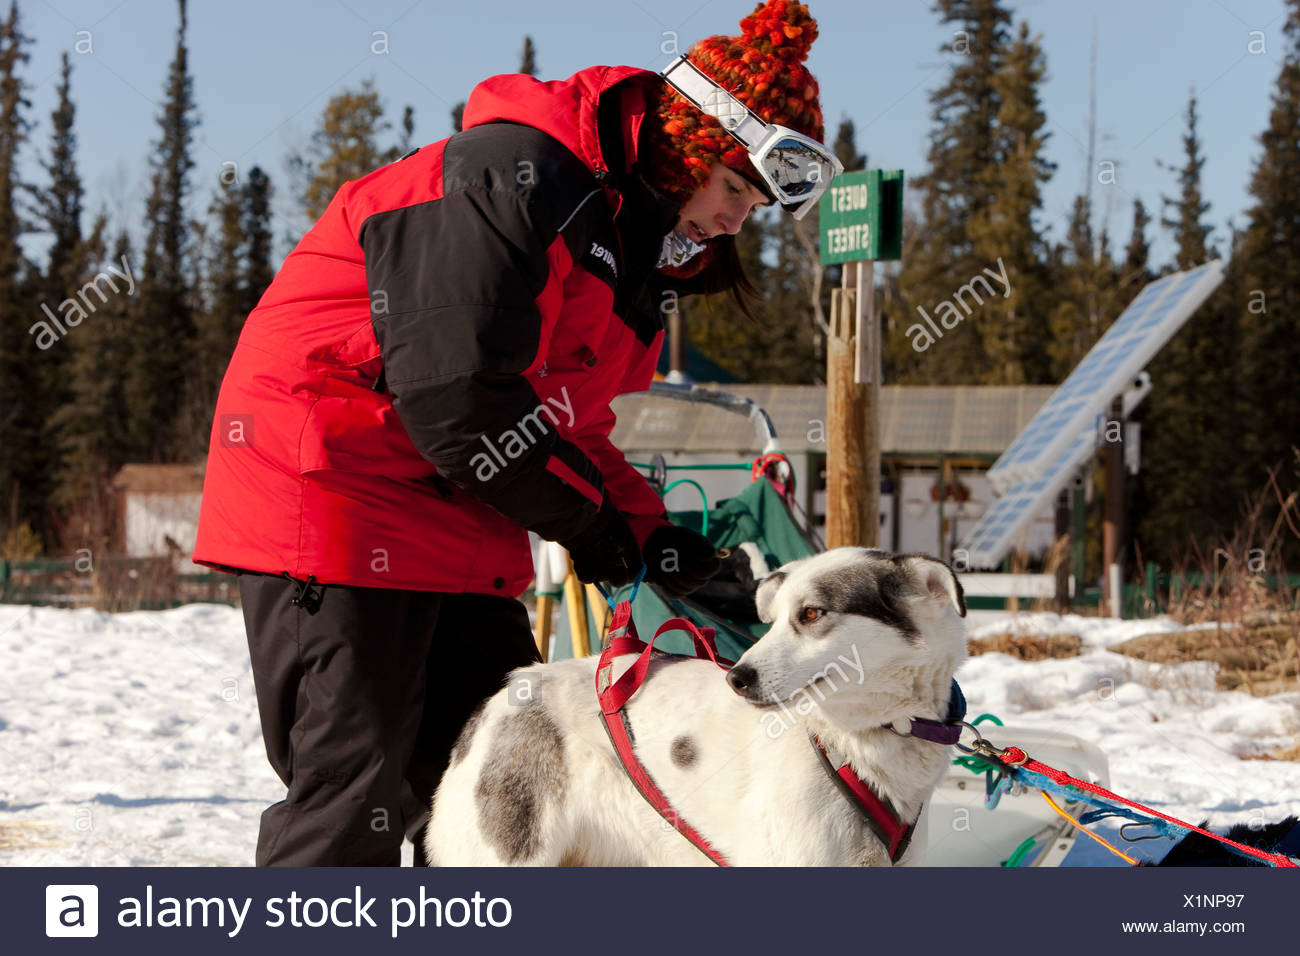 Young woman putting a harness on a sled dog, Alaskan Husky, harnessing, Yukon Territory, Canada - Stock Image